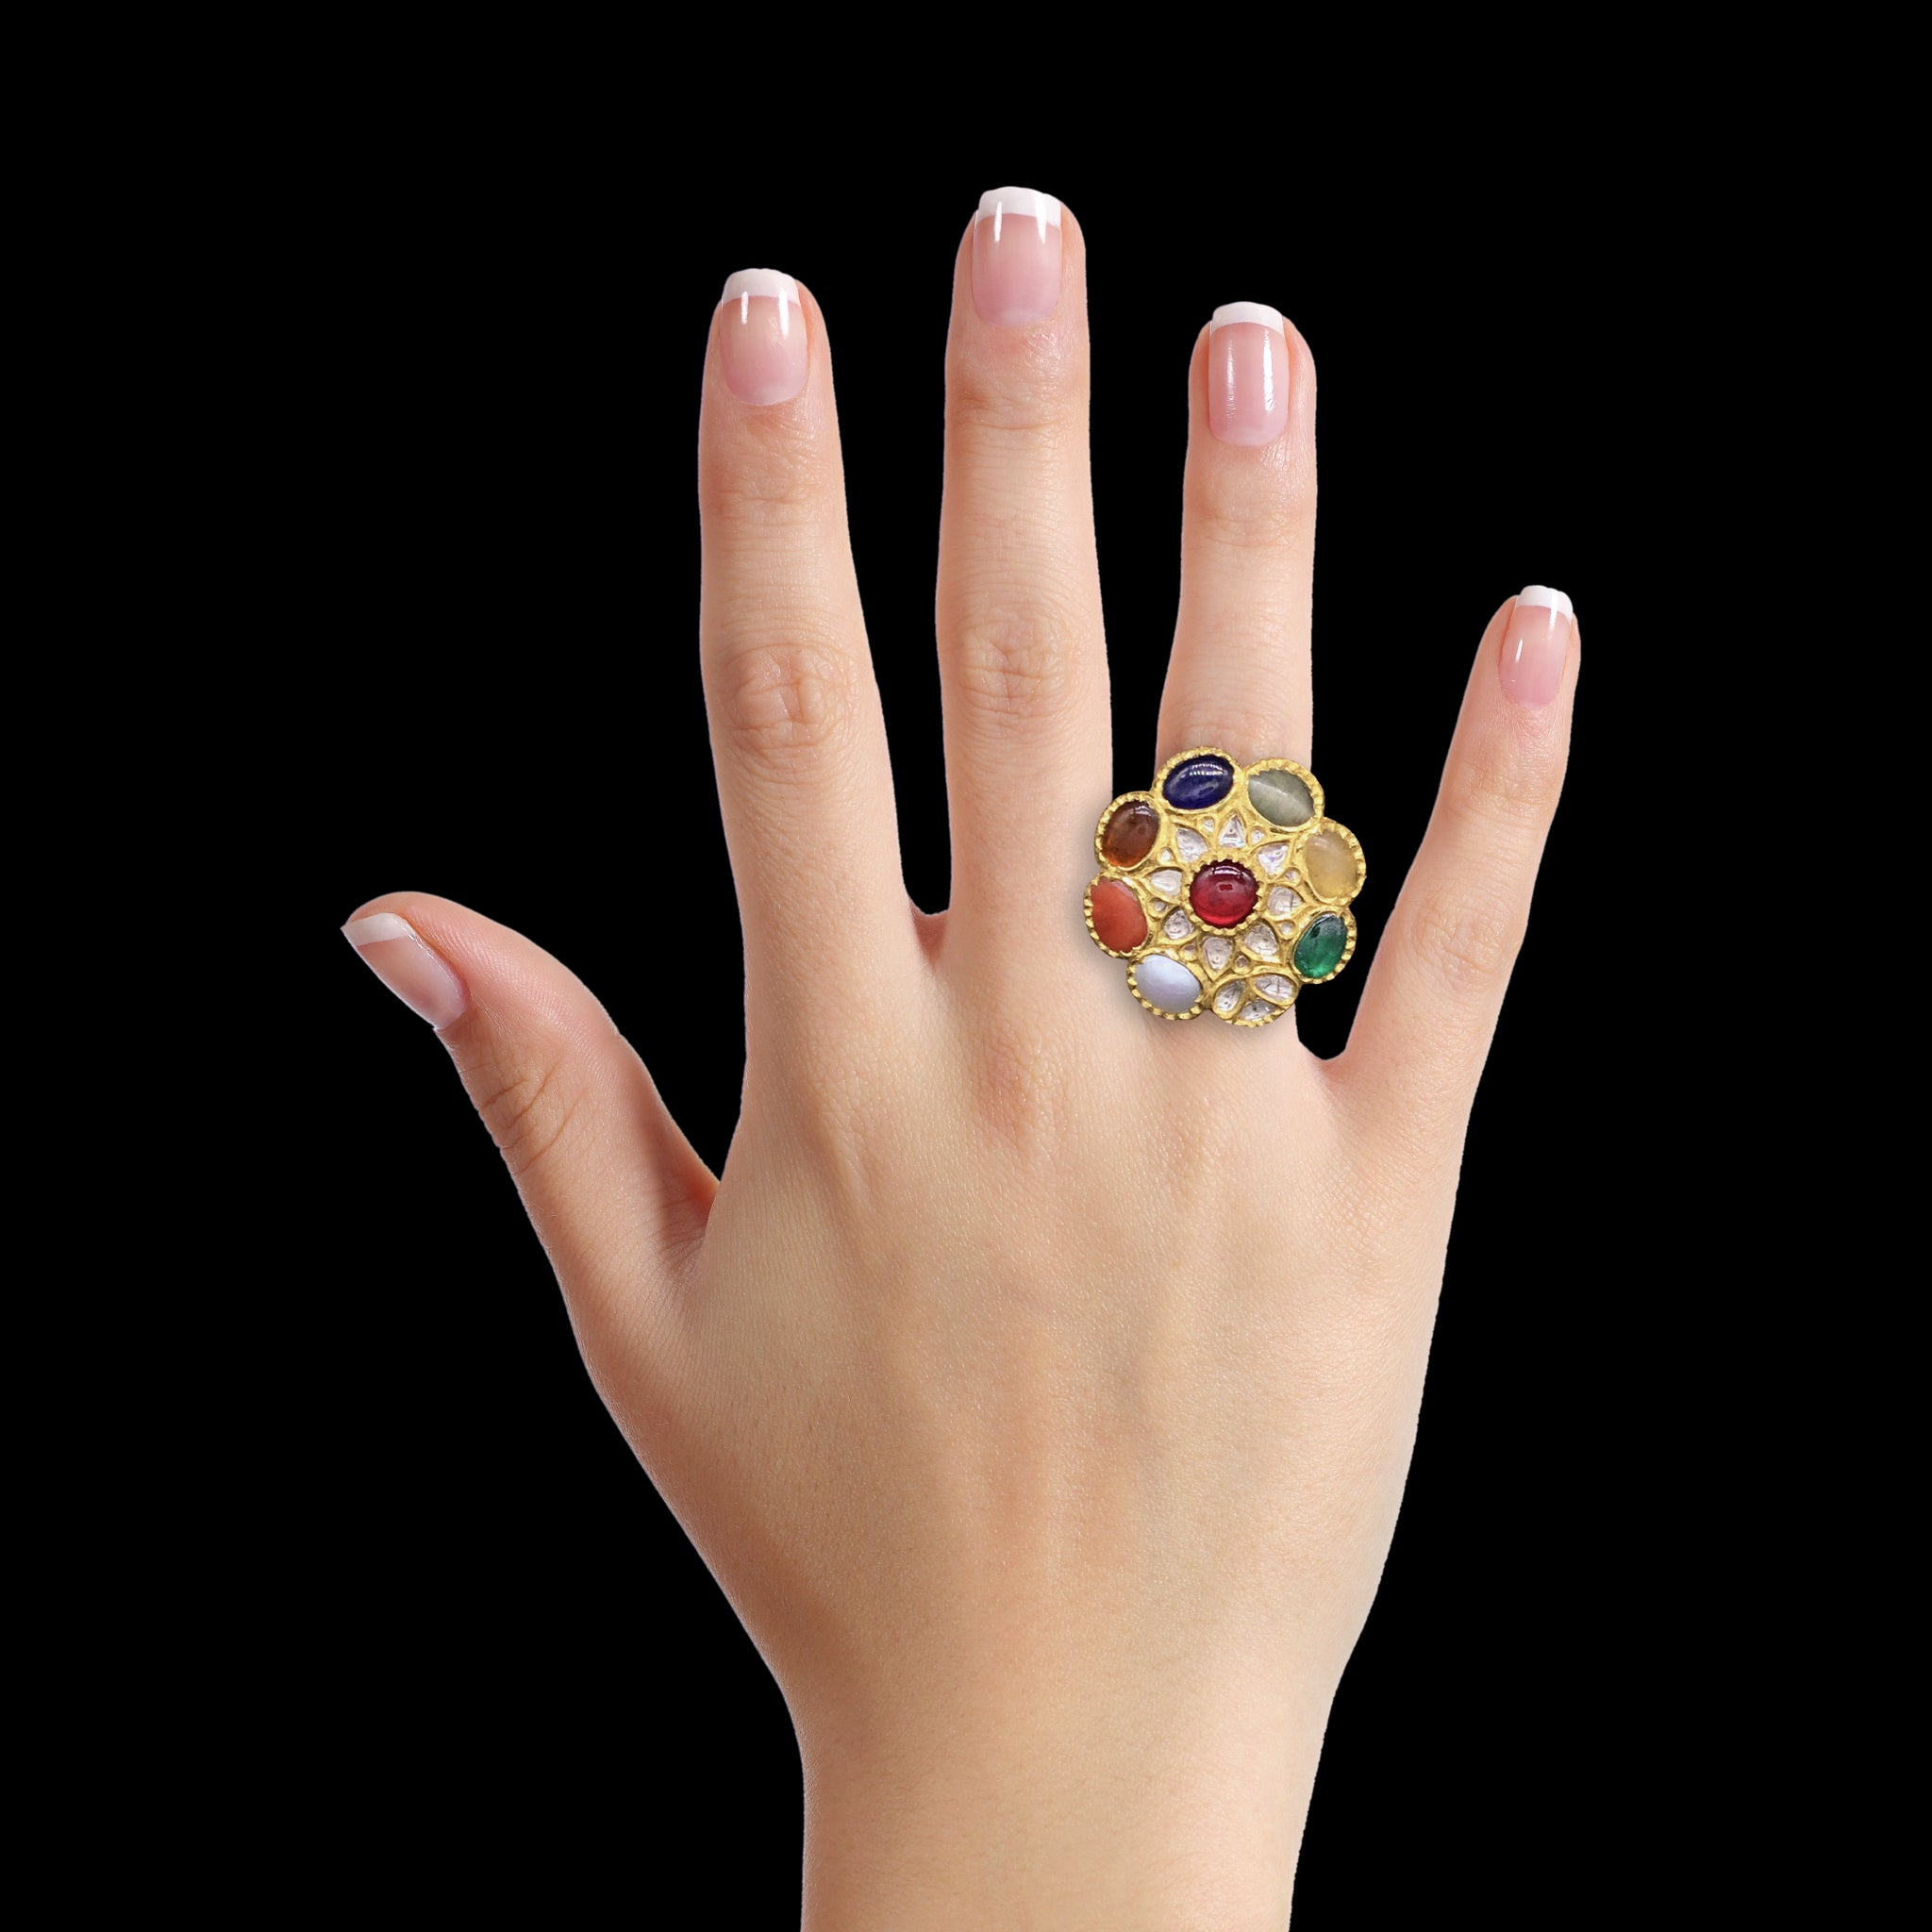 18k Gold and Diamond Polki Cocktail Ring with Navratna Stones